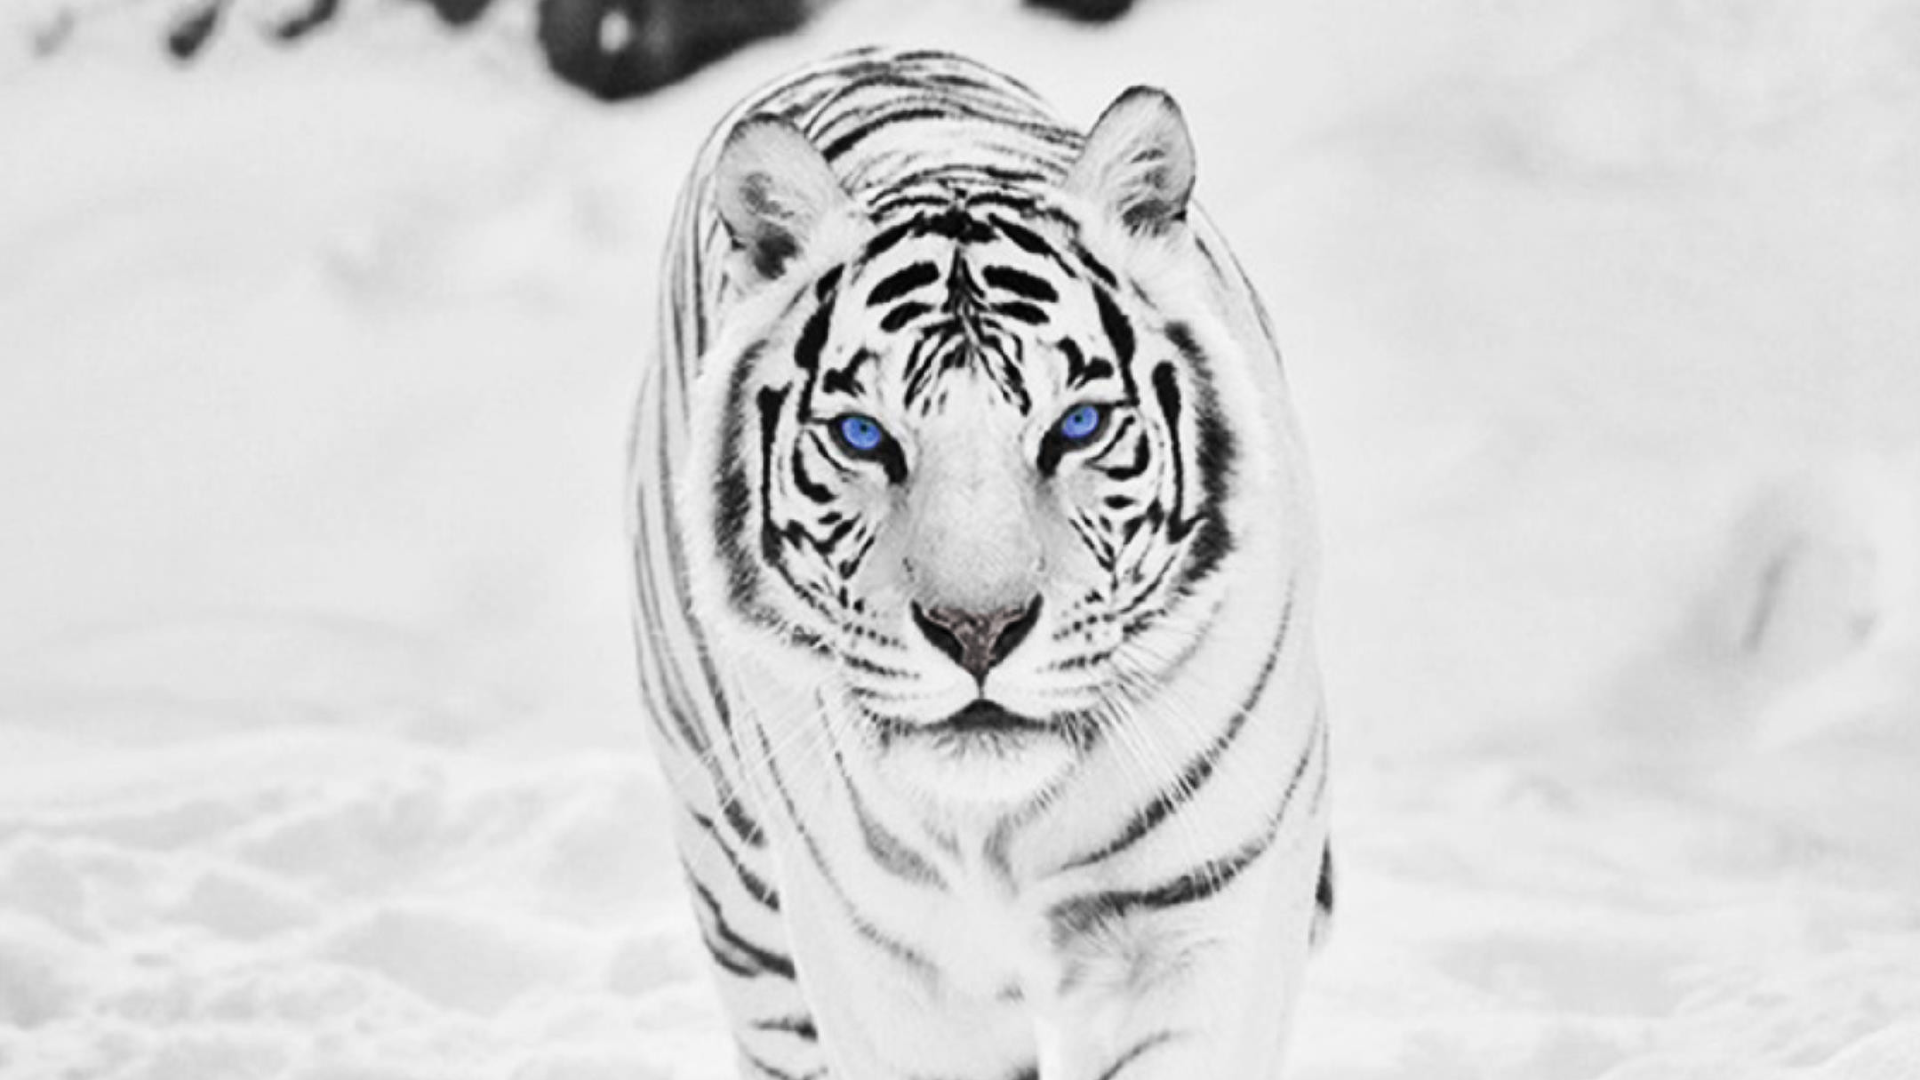 White Tiger Hd Wallpapers Top Free White Tiger Hd Backgrounds Wallpaperaccess